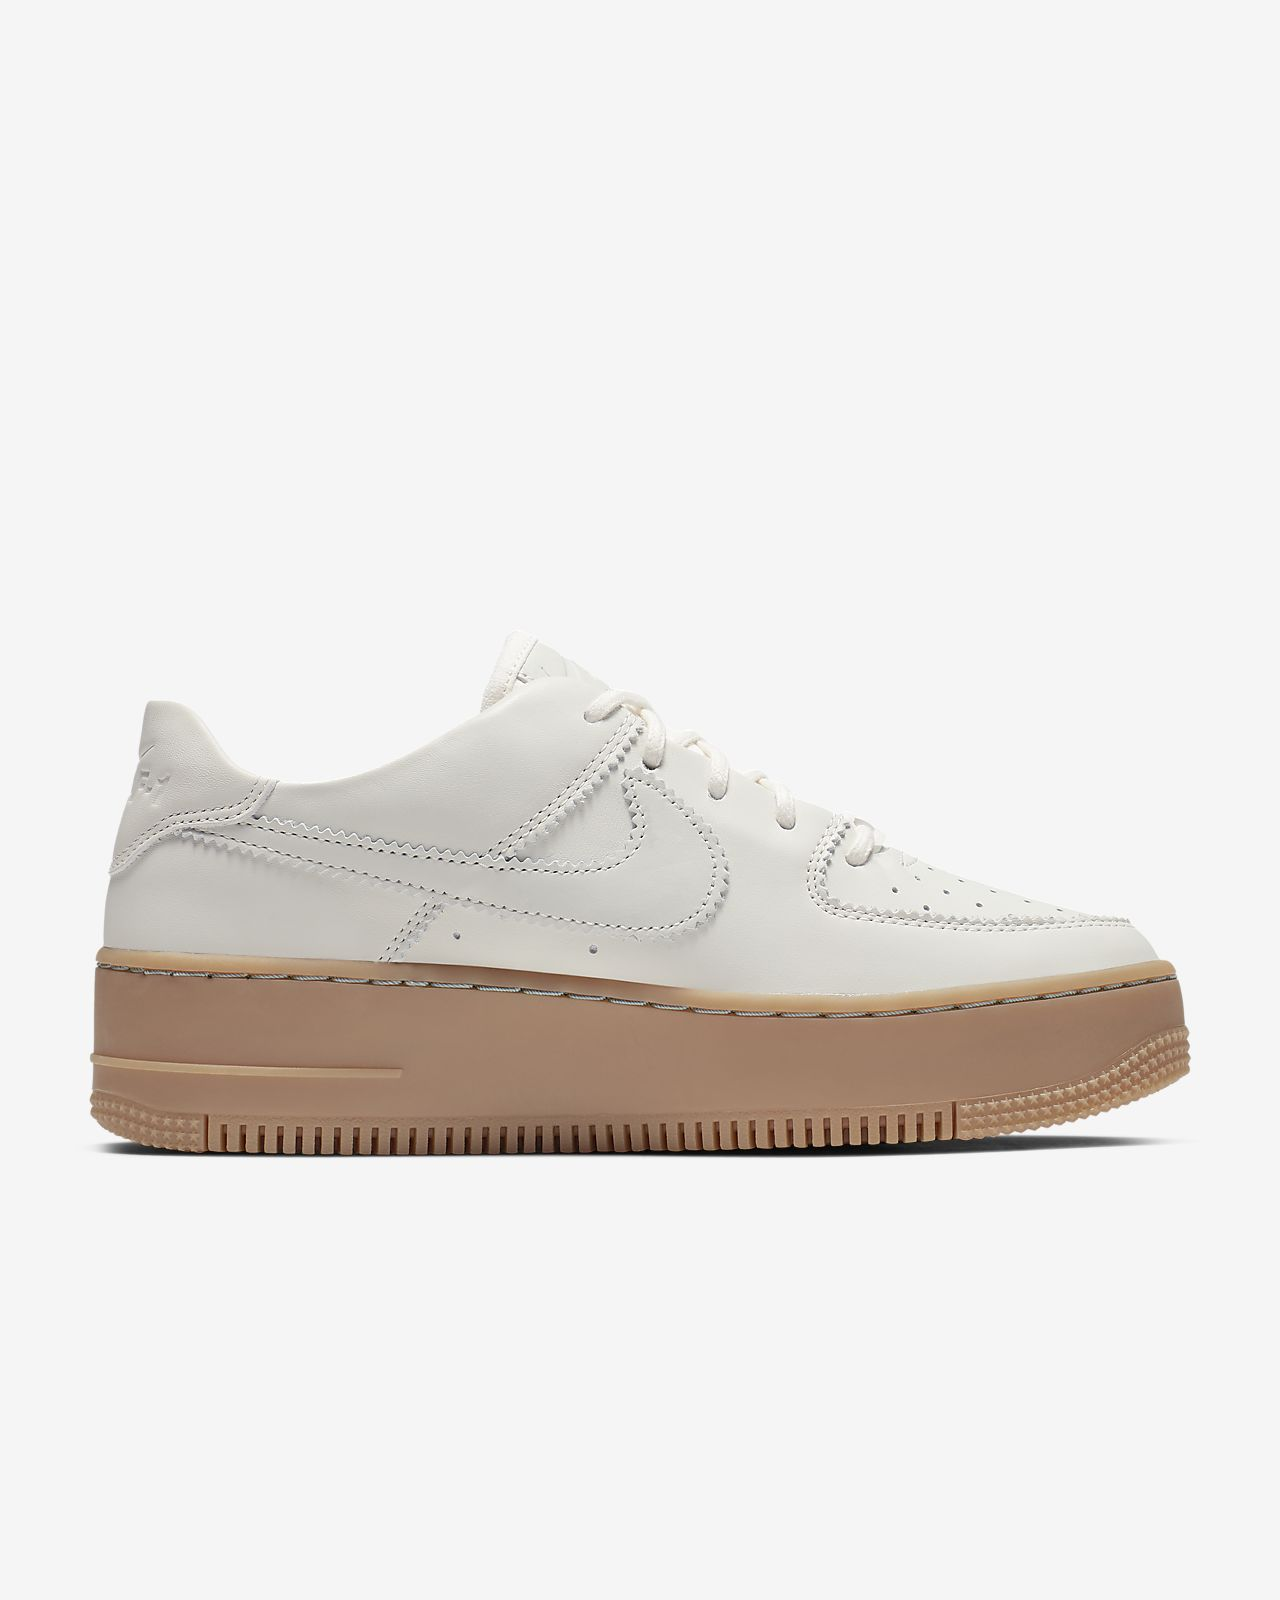 new product 28839 352a8 ... Nike Air Force 1 Sage Low LX Women s Shoe